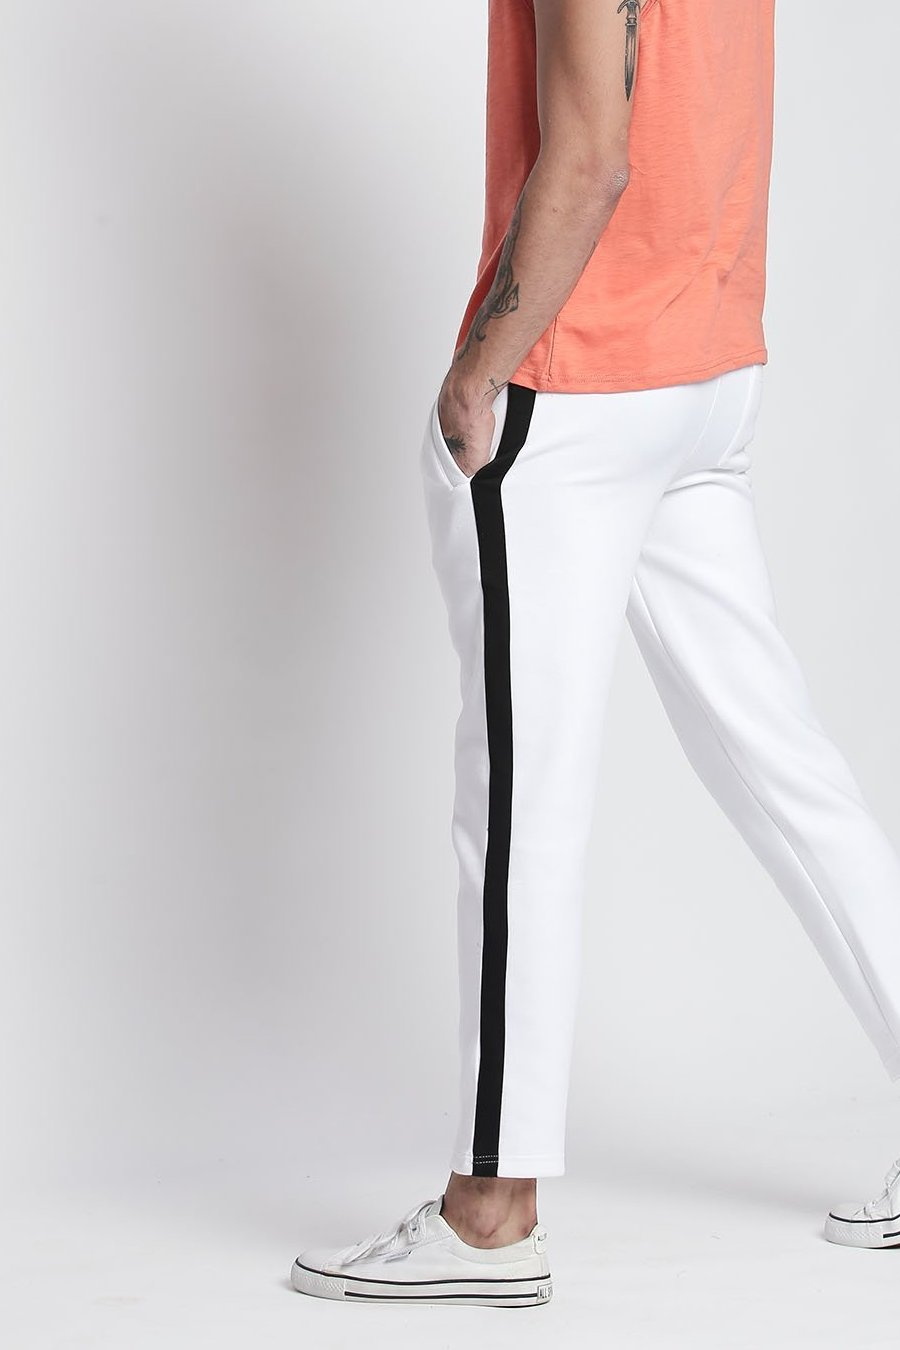 Hemsters Trackpant 28 White Slim Fit Ankle Length Trackpant